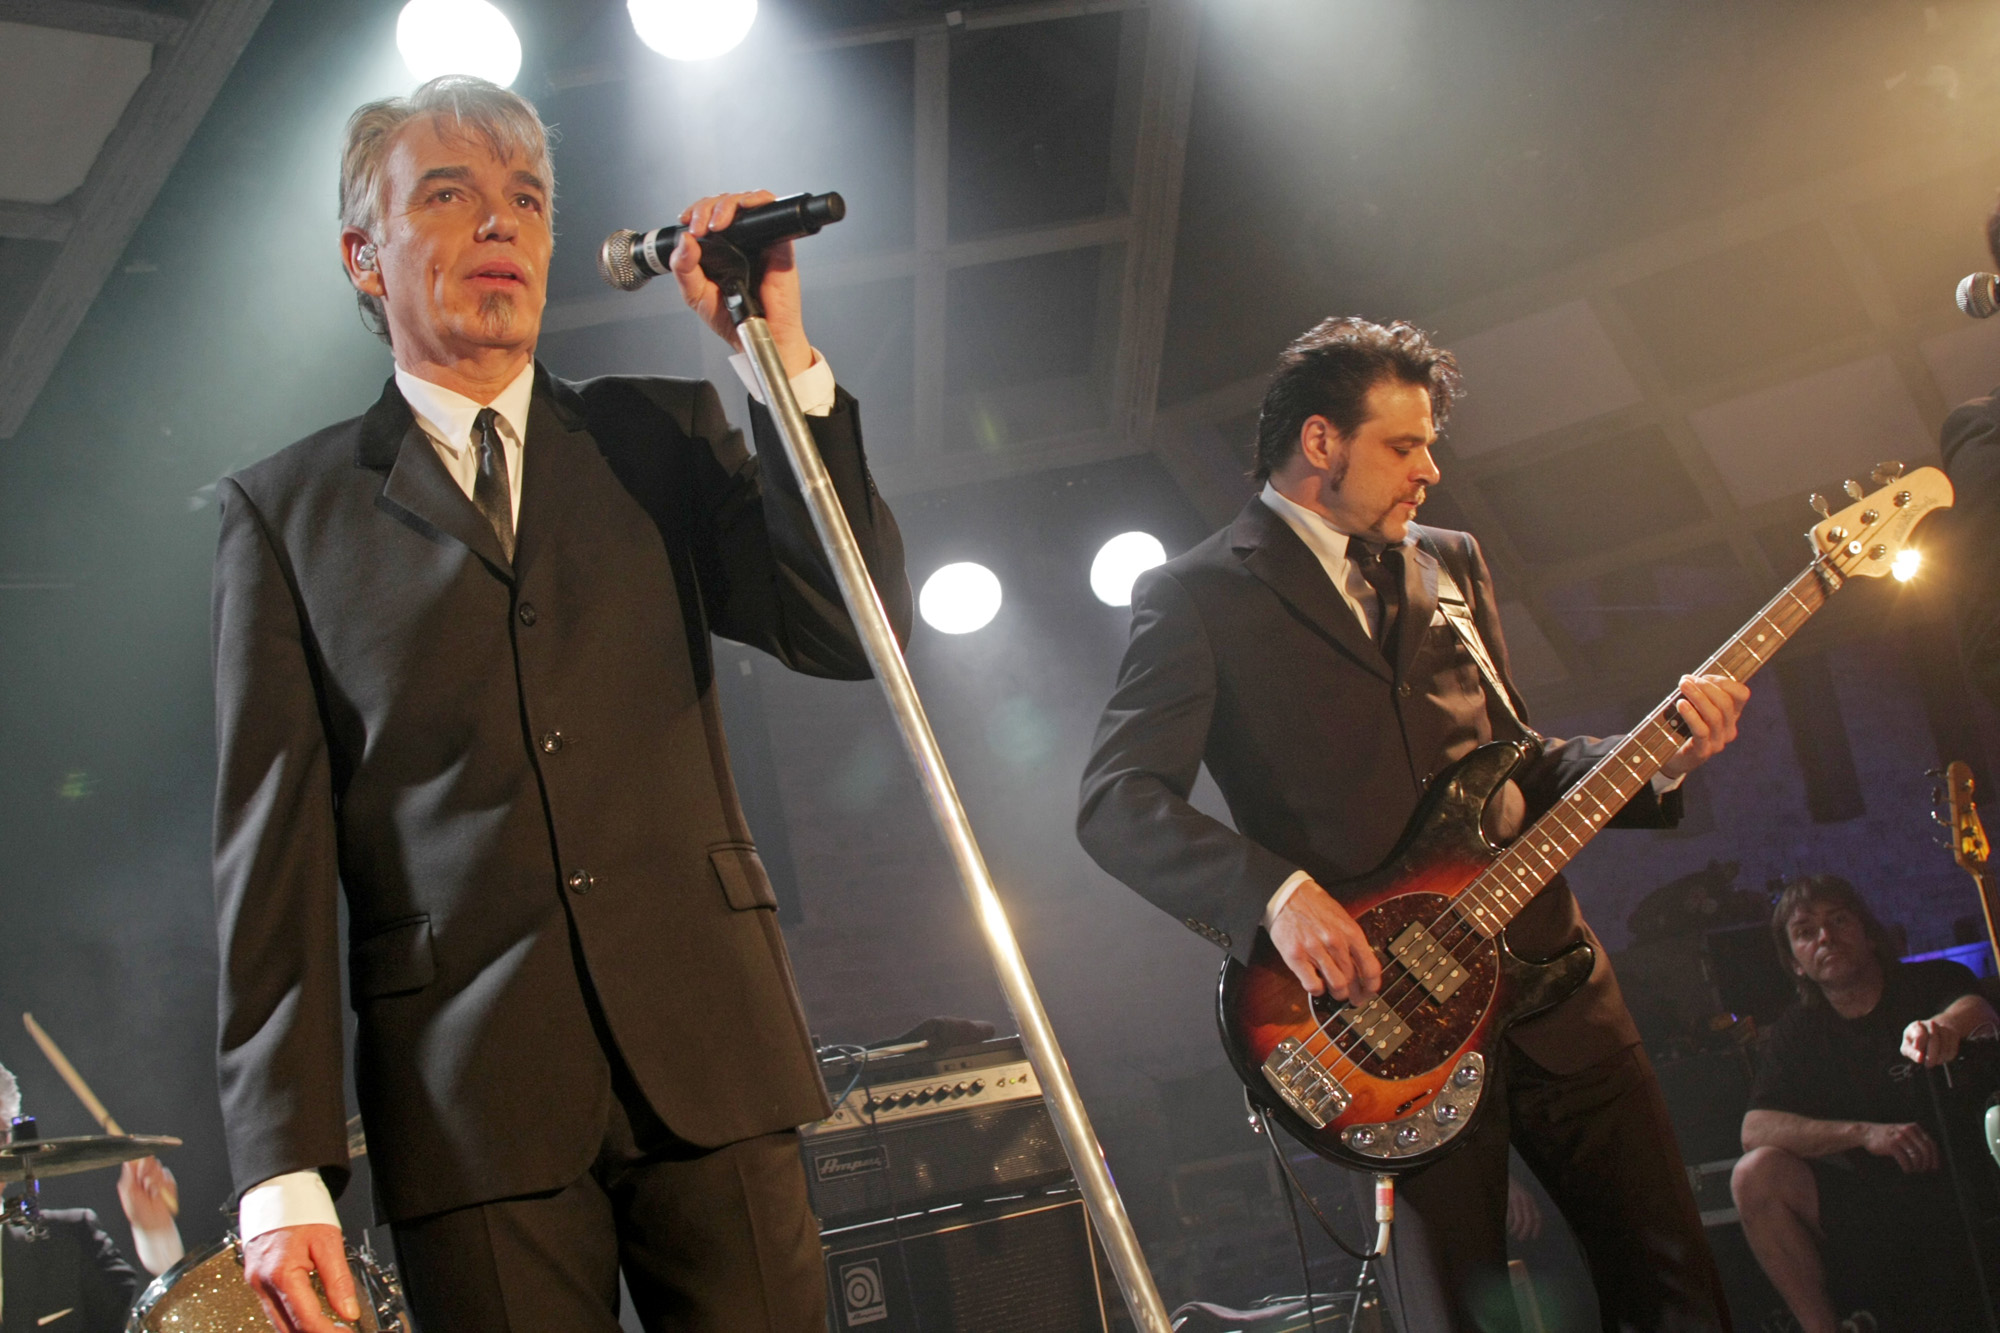 Billy Bob Thornton brings his band to The Birchmere